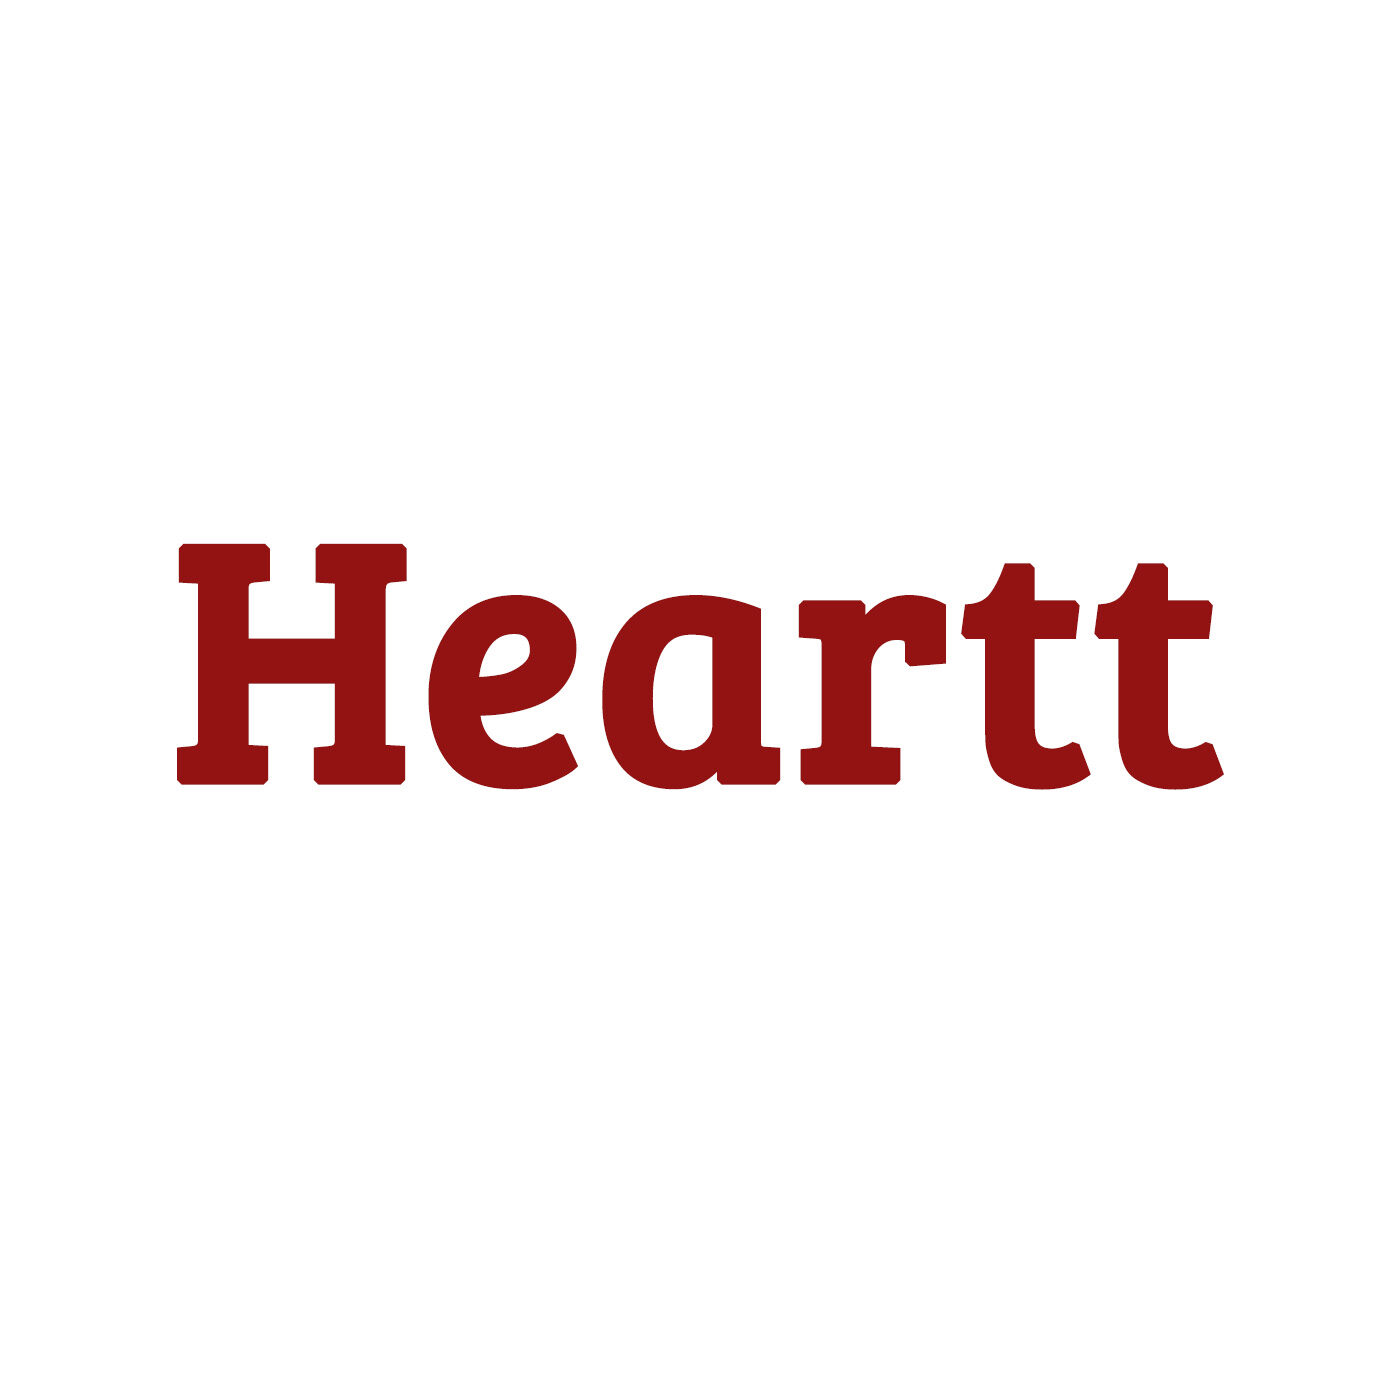 heartt non-profit shirley crawford